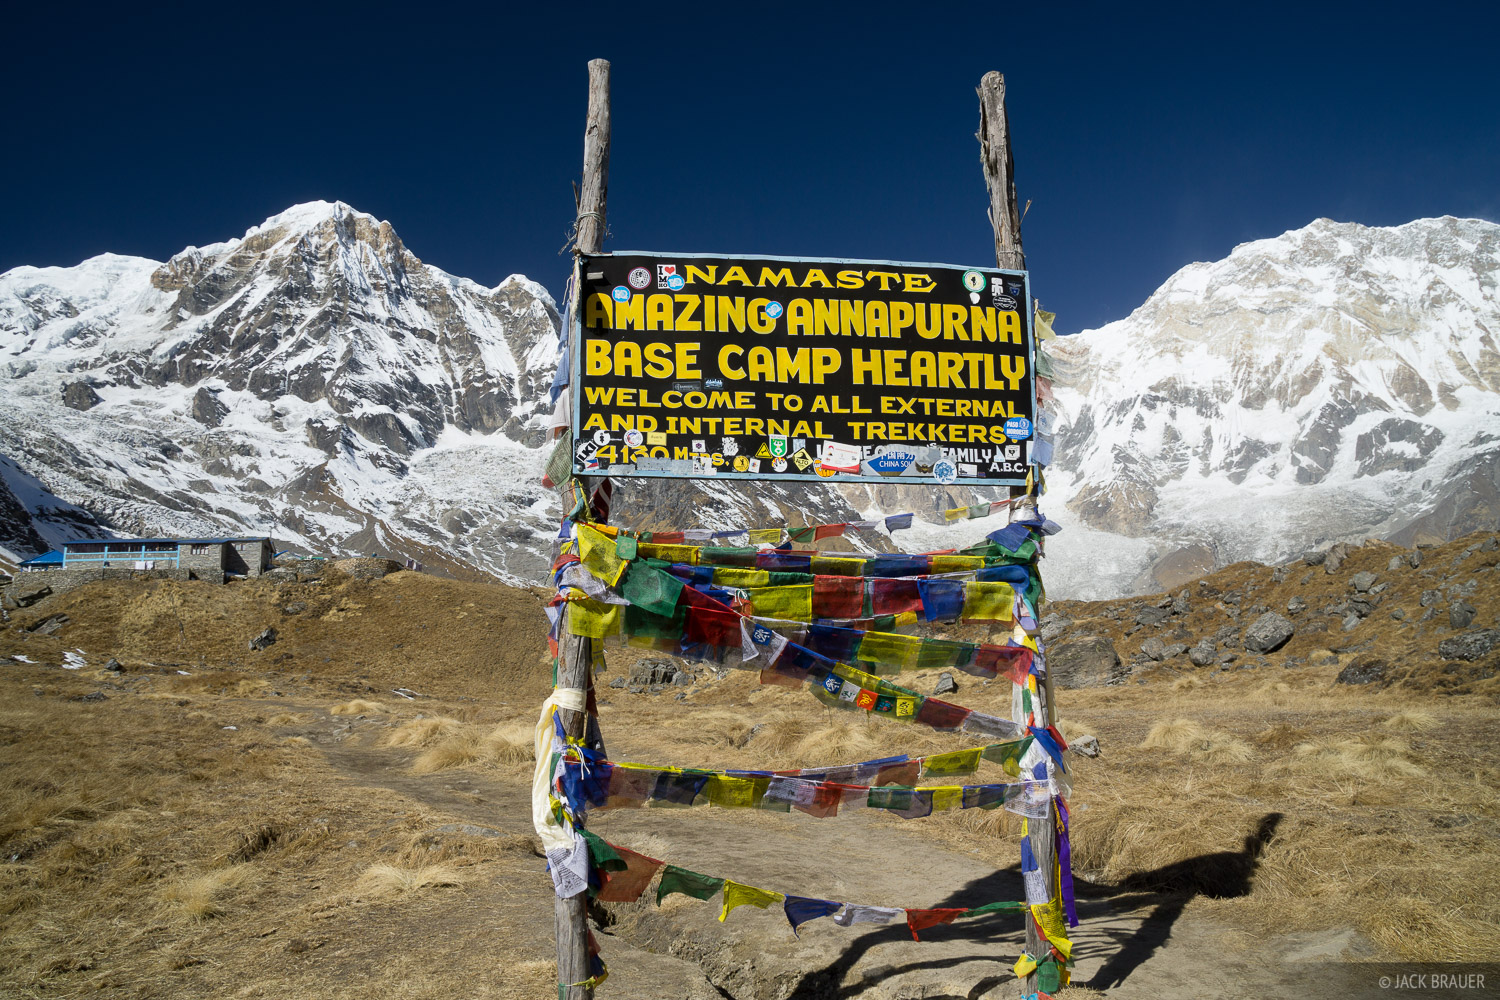 Annapurna,Annapurna Base Camp,Annapurna South,Himalaya,Nepal, sign, photo